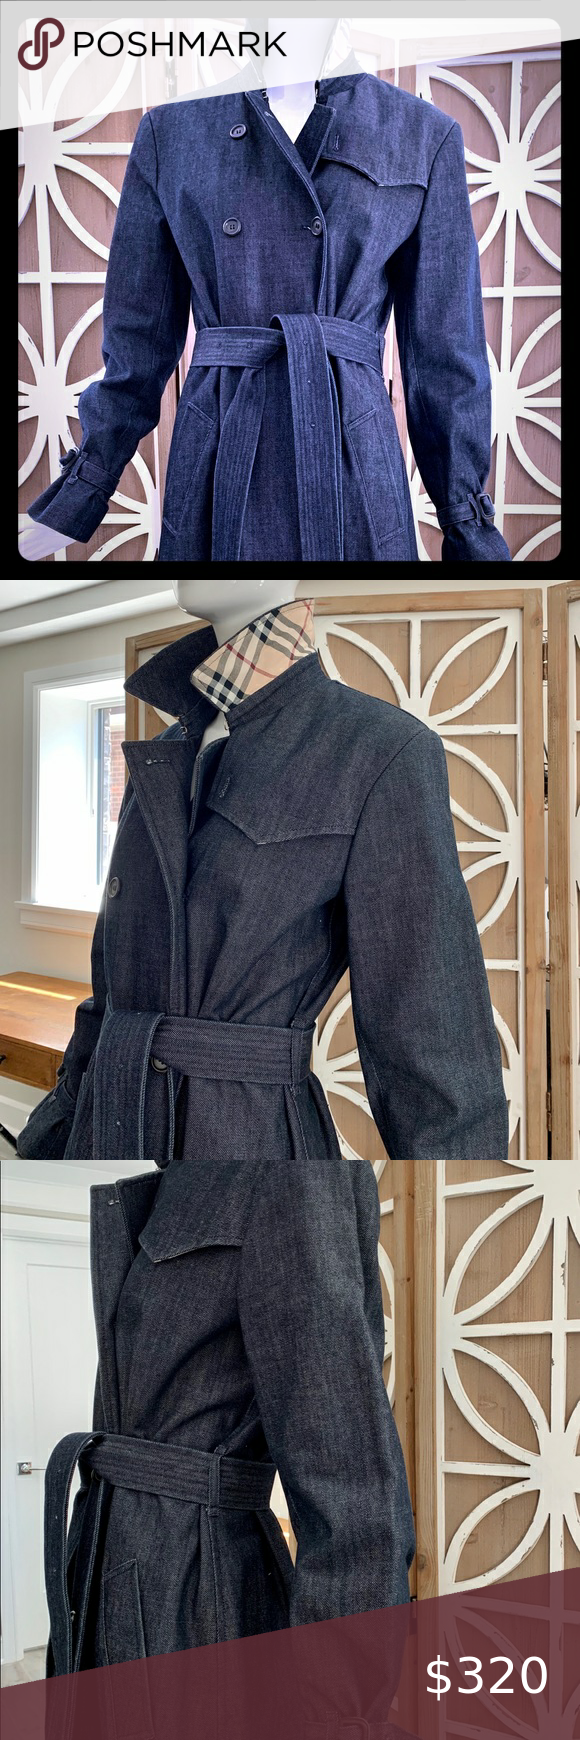 Burberry Denim Trench Coat Up For Sale Is A Burberry Long Denim Trench Coat In Size 8 I Have Used This Item Just Denim Trench Coat Clothes Design Trench Coat